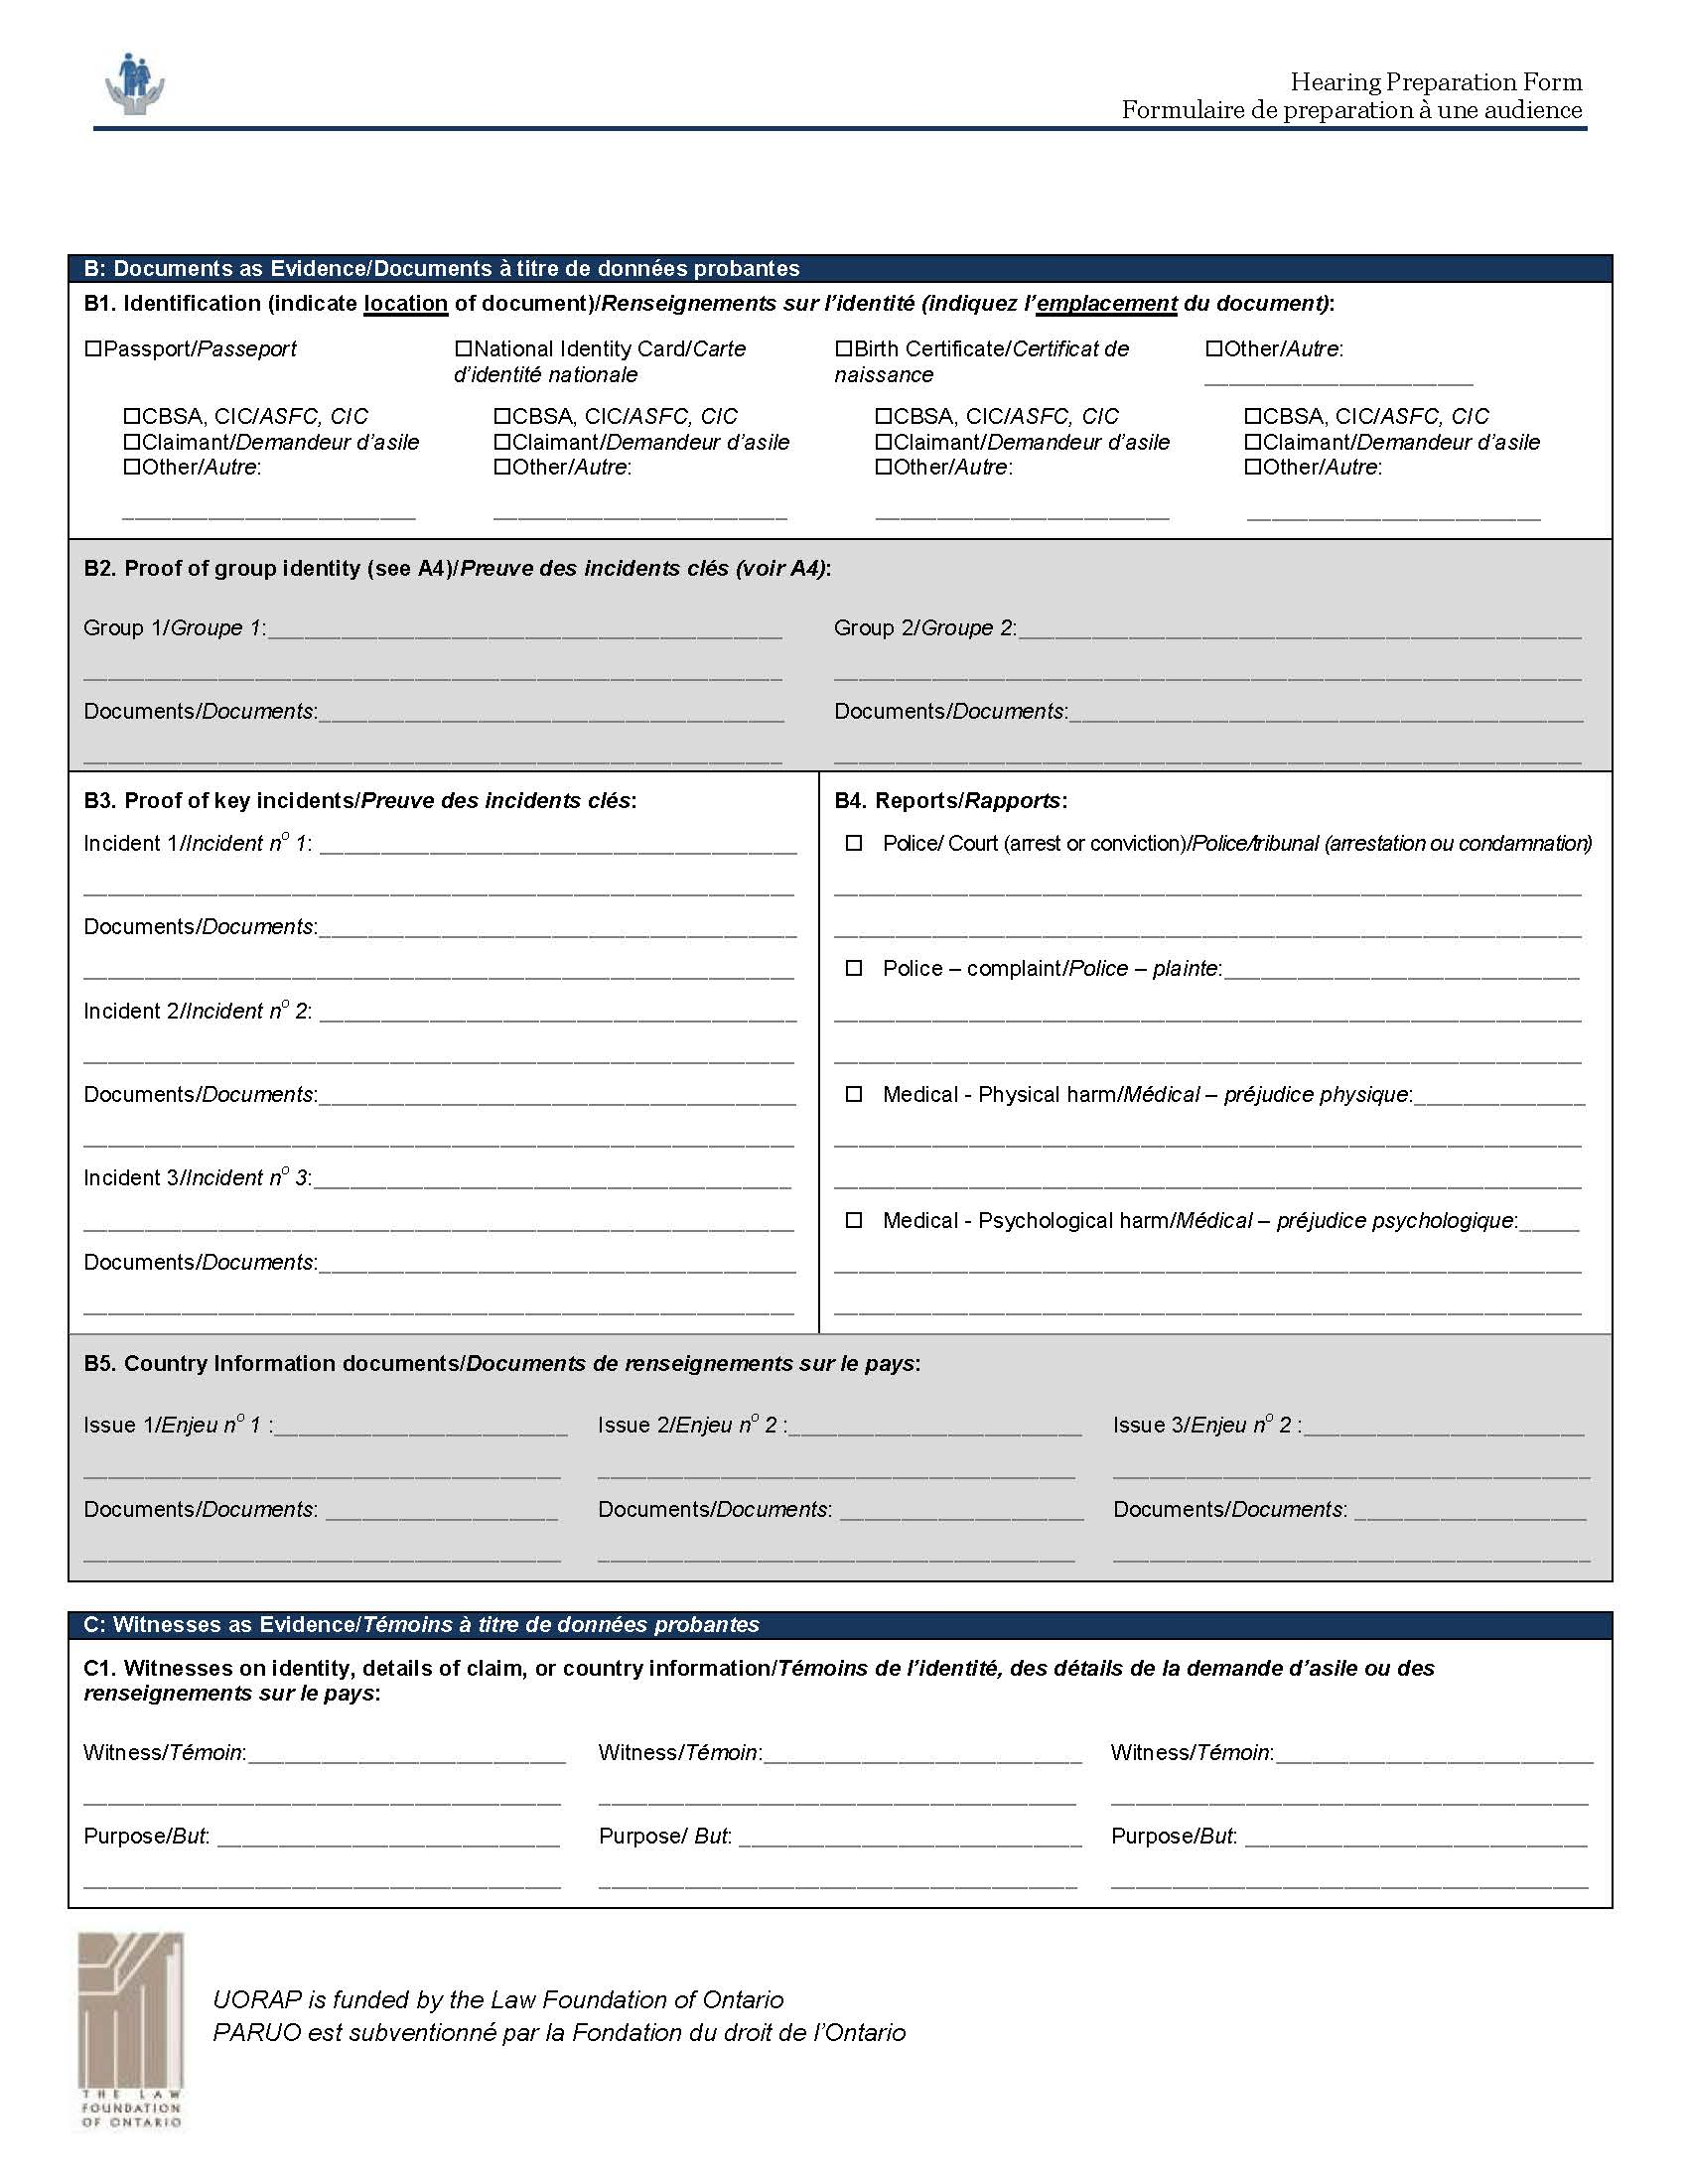 The Hearing Preparation Form   Canadian Council for Refugees